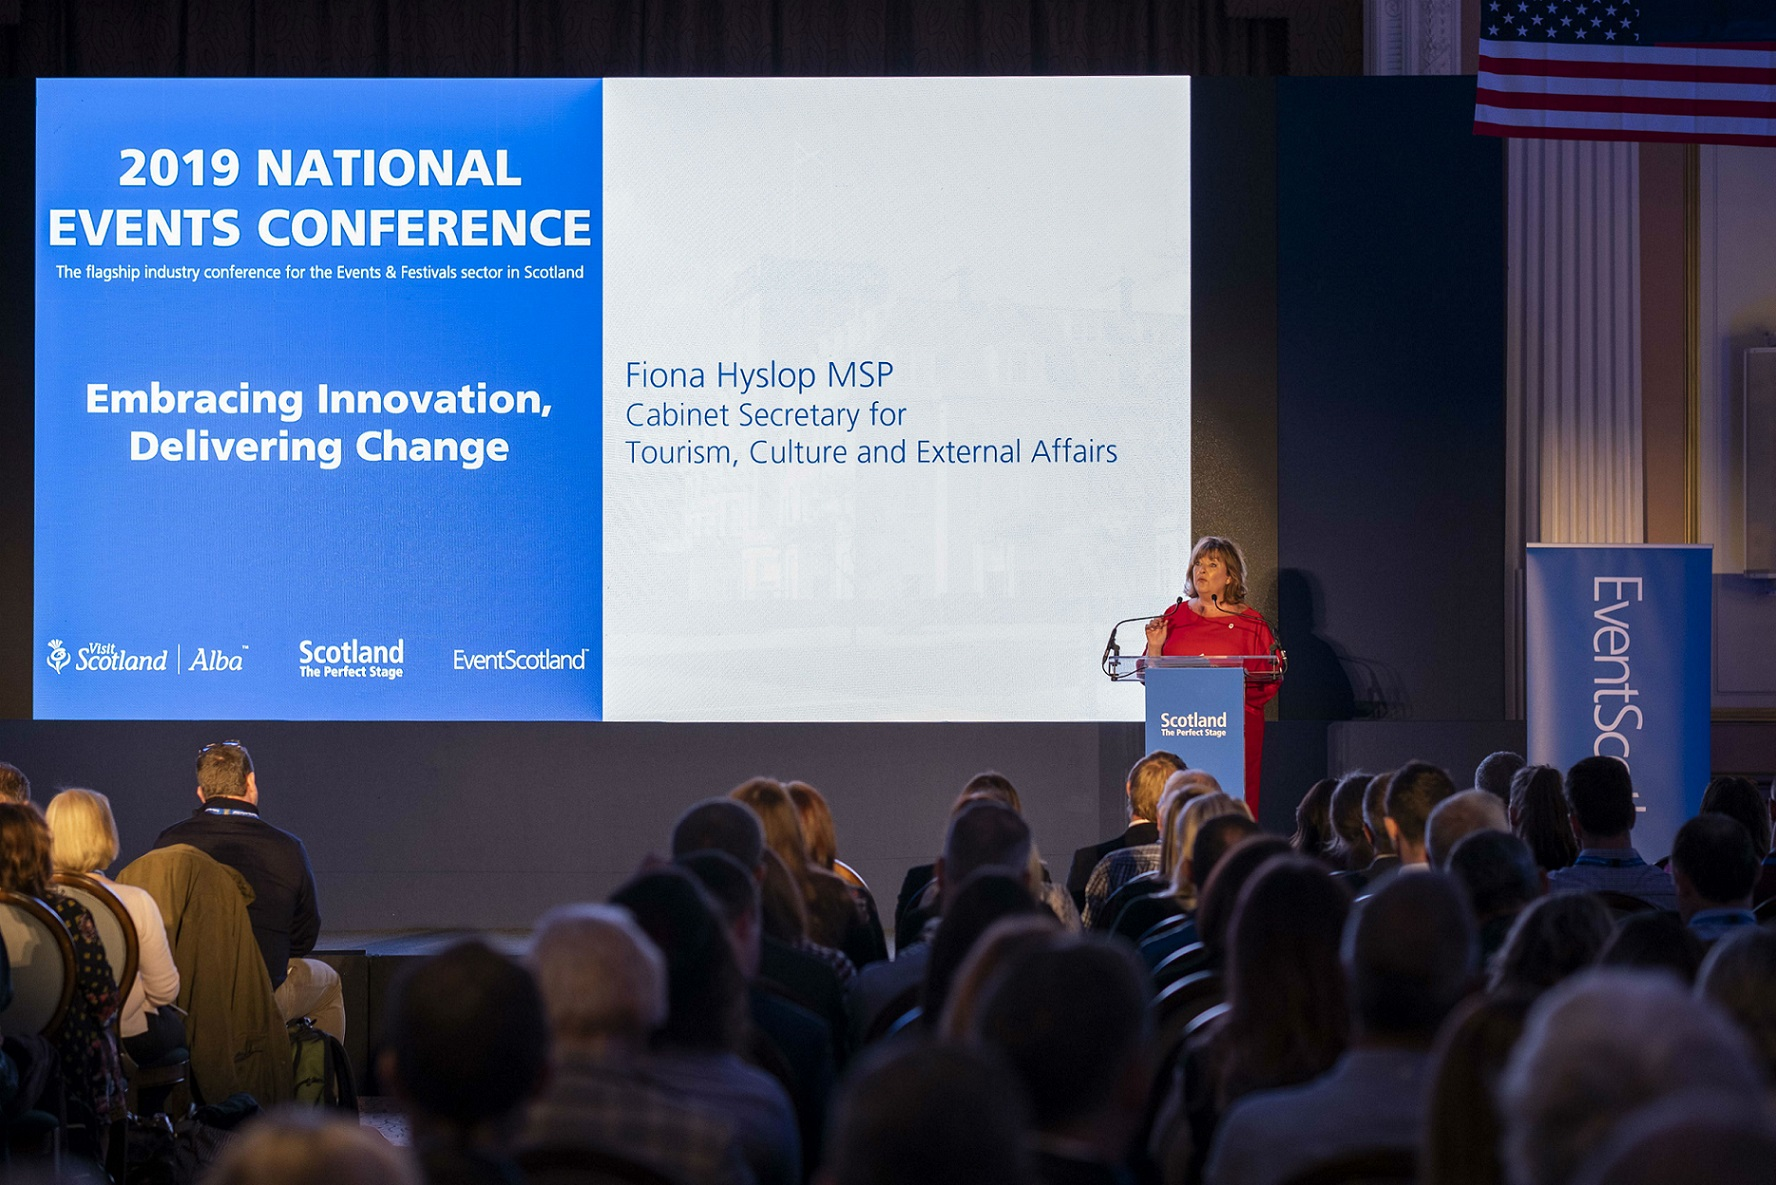 Fiona Hyslop MSP at the at the National Events Conference 2019